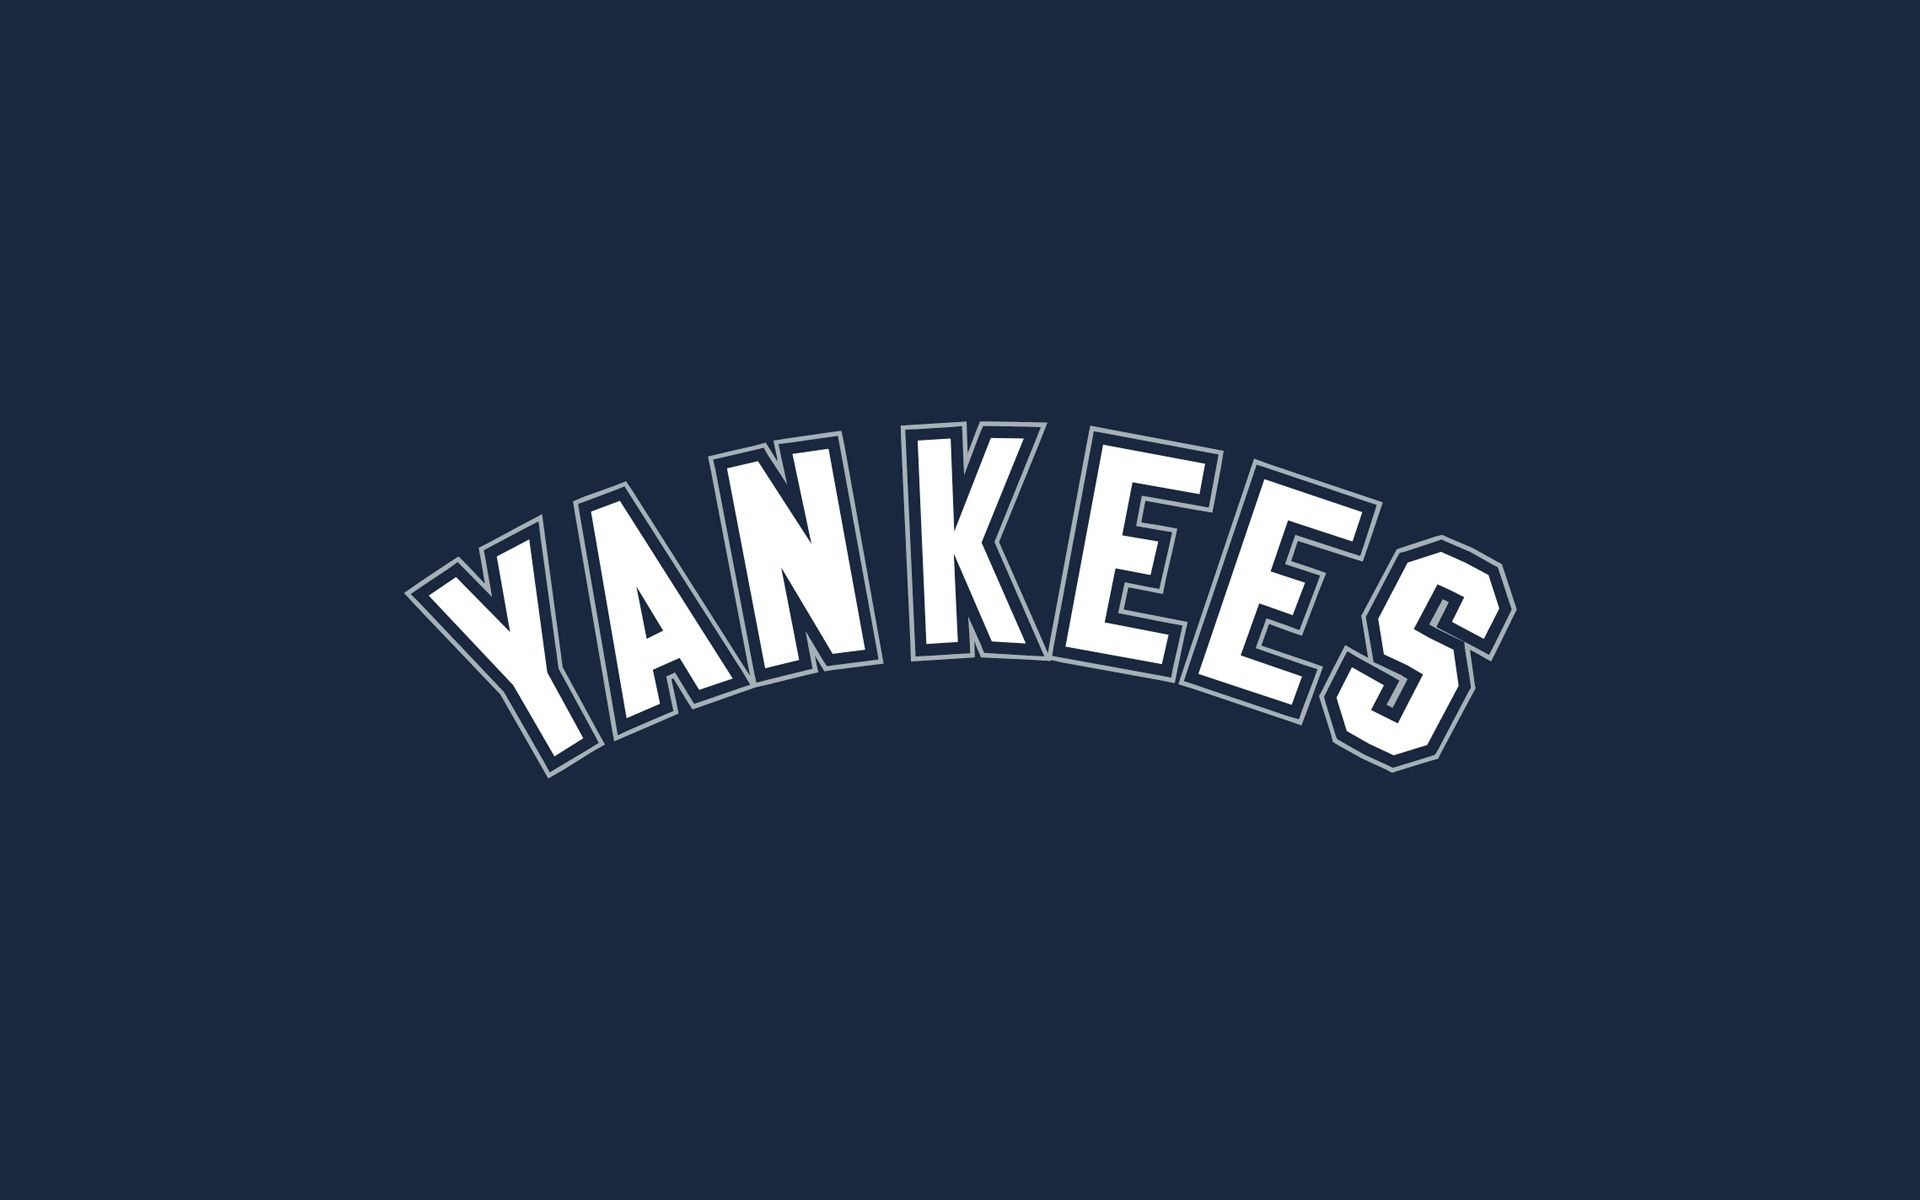 Hd New York Yankees Widescreen Logo Wallpaper Of Computer Images